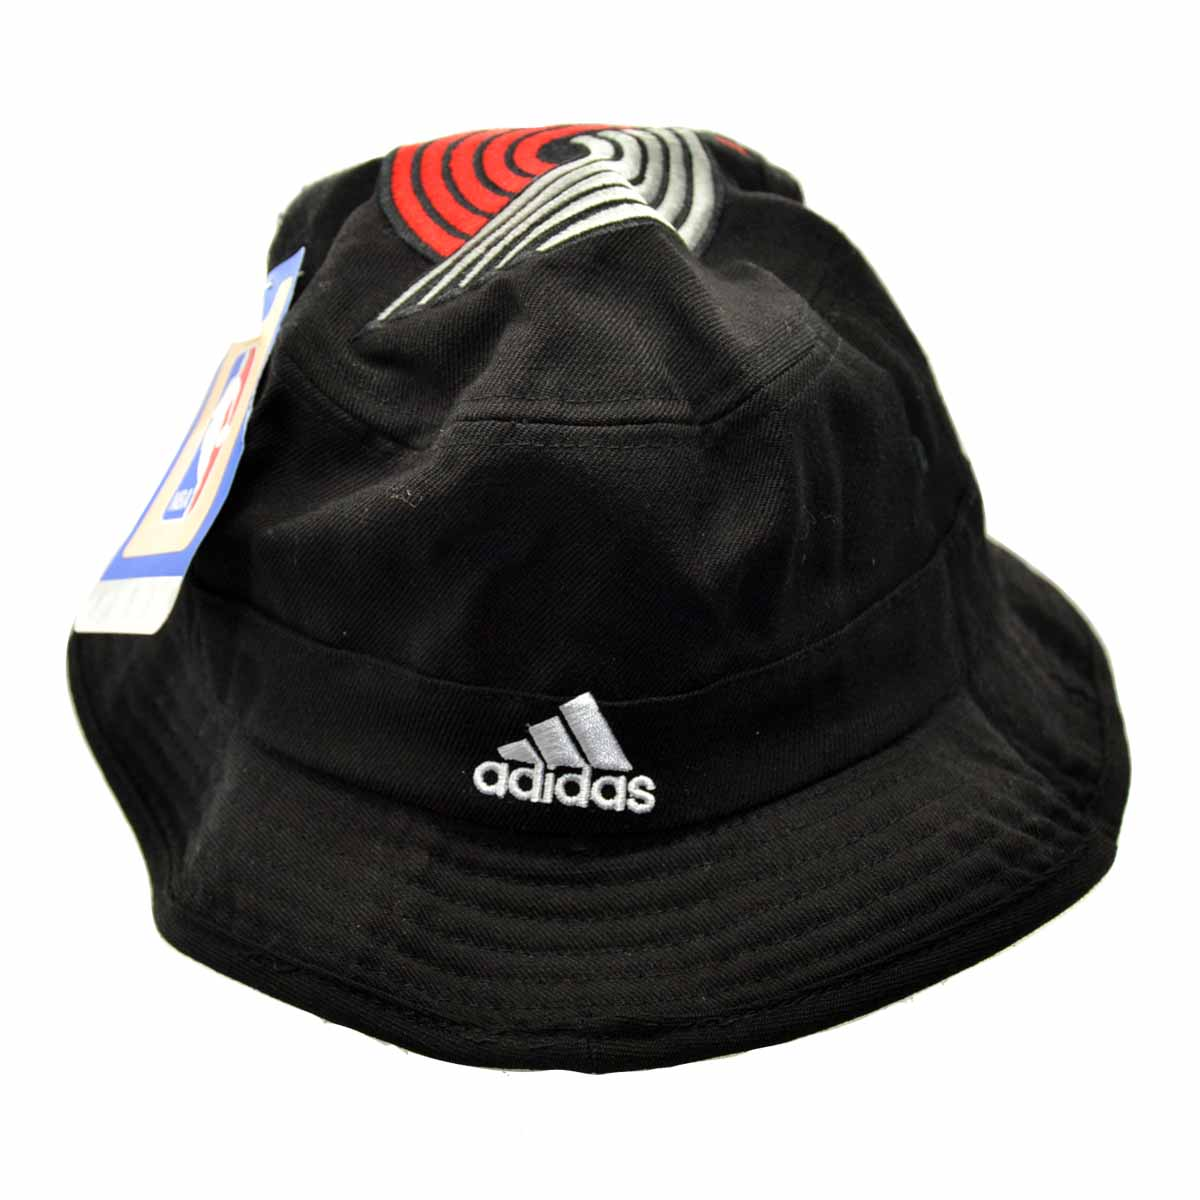 Portland Trailblazers Adidas NBA Fashion Bucket Hat  ed190127c2c